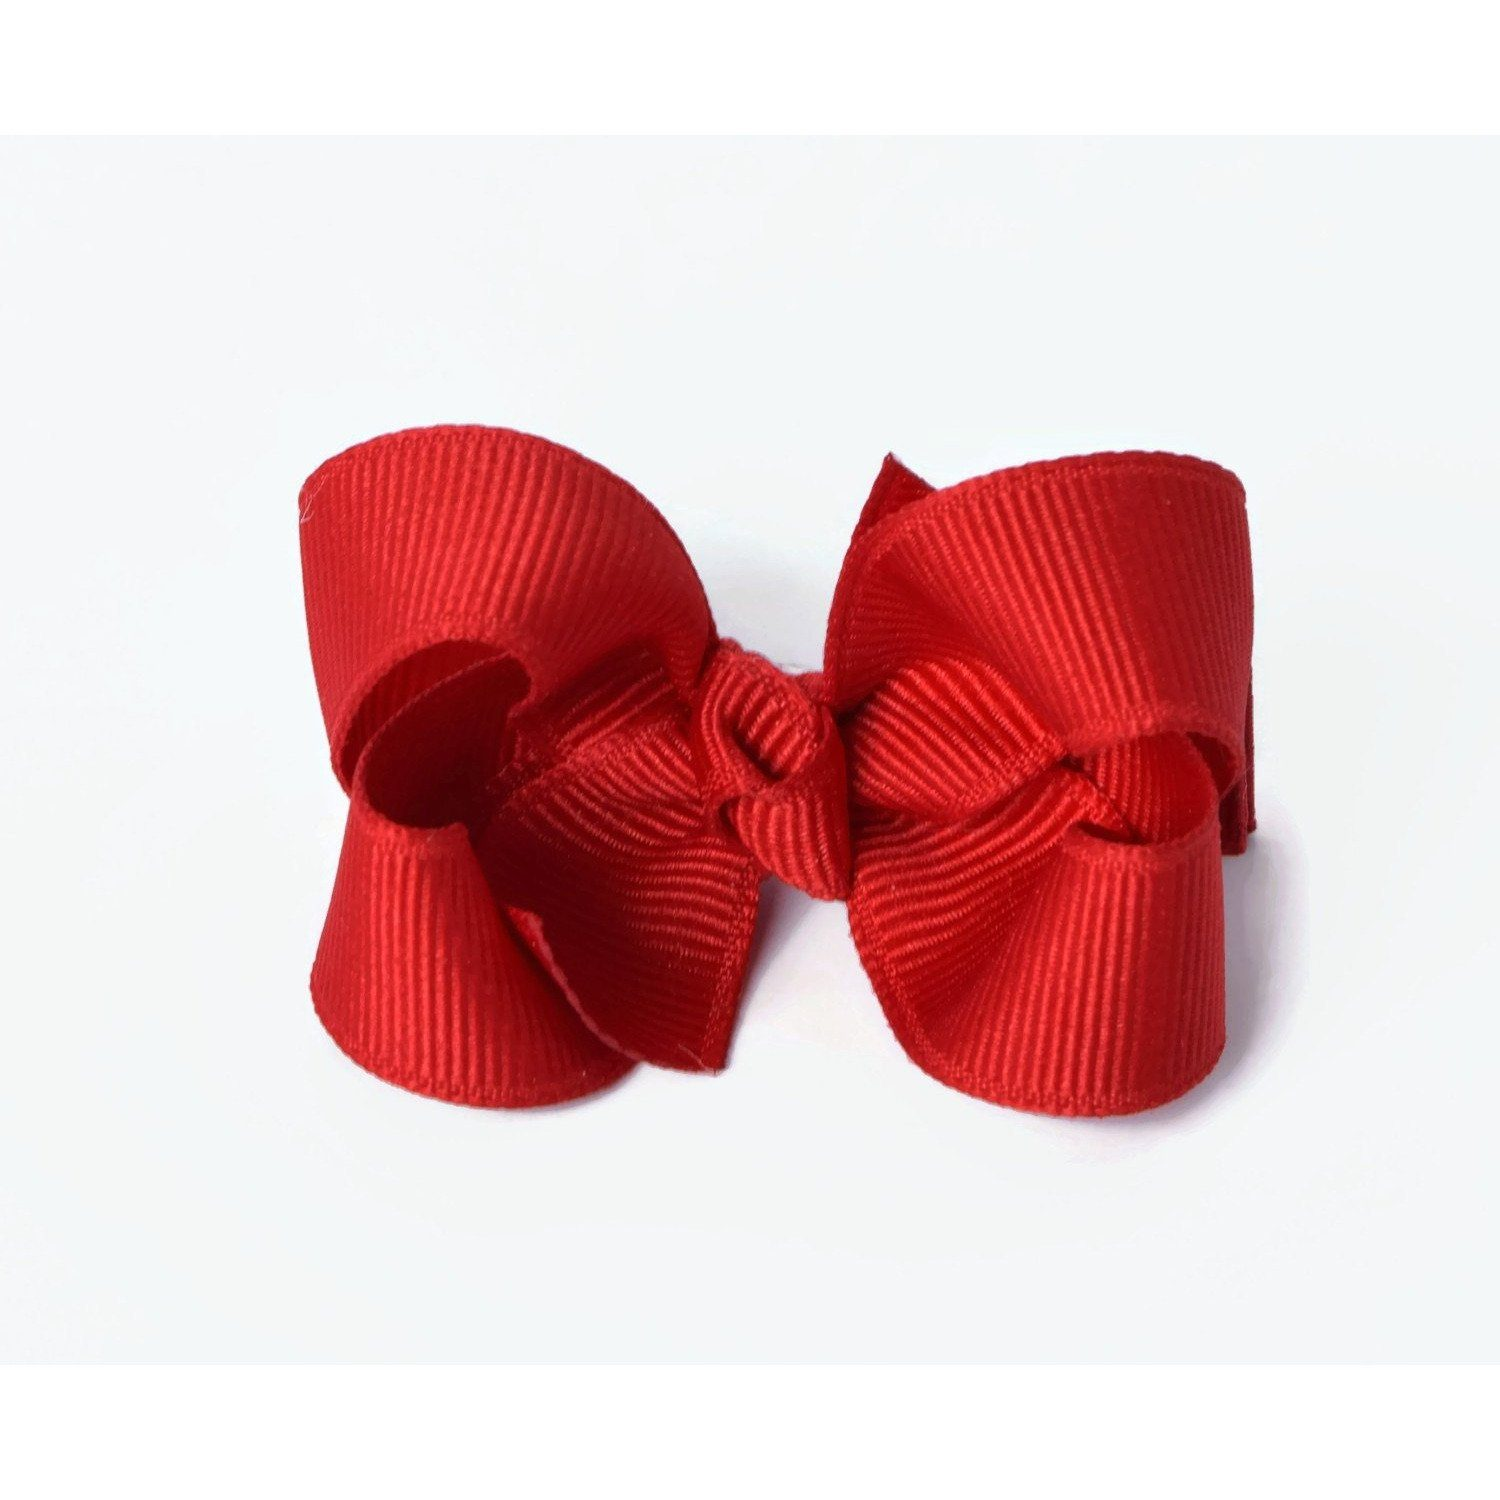 Adorable Essentials, Red Bow,Accessories,Adorable Essentials, LLC